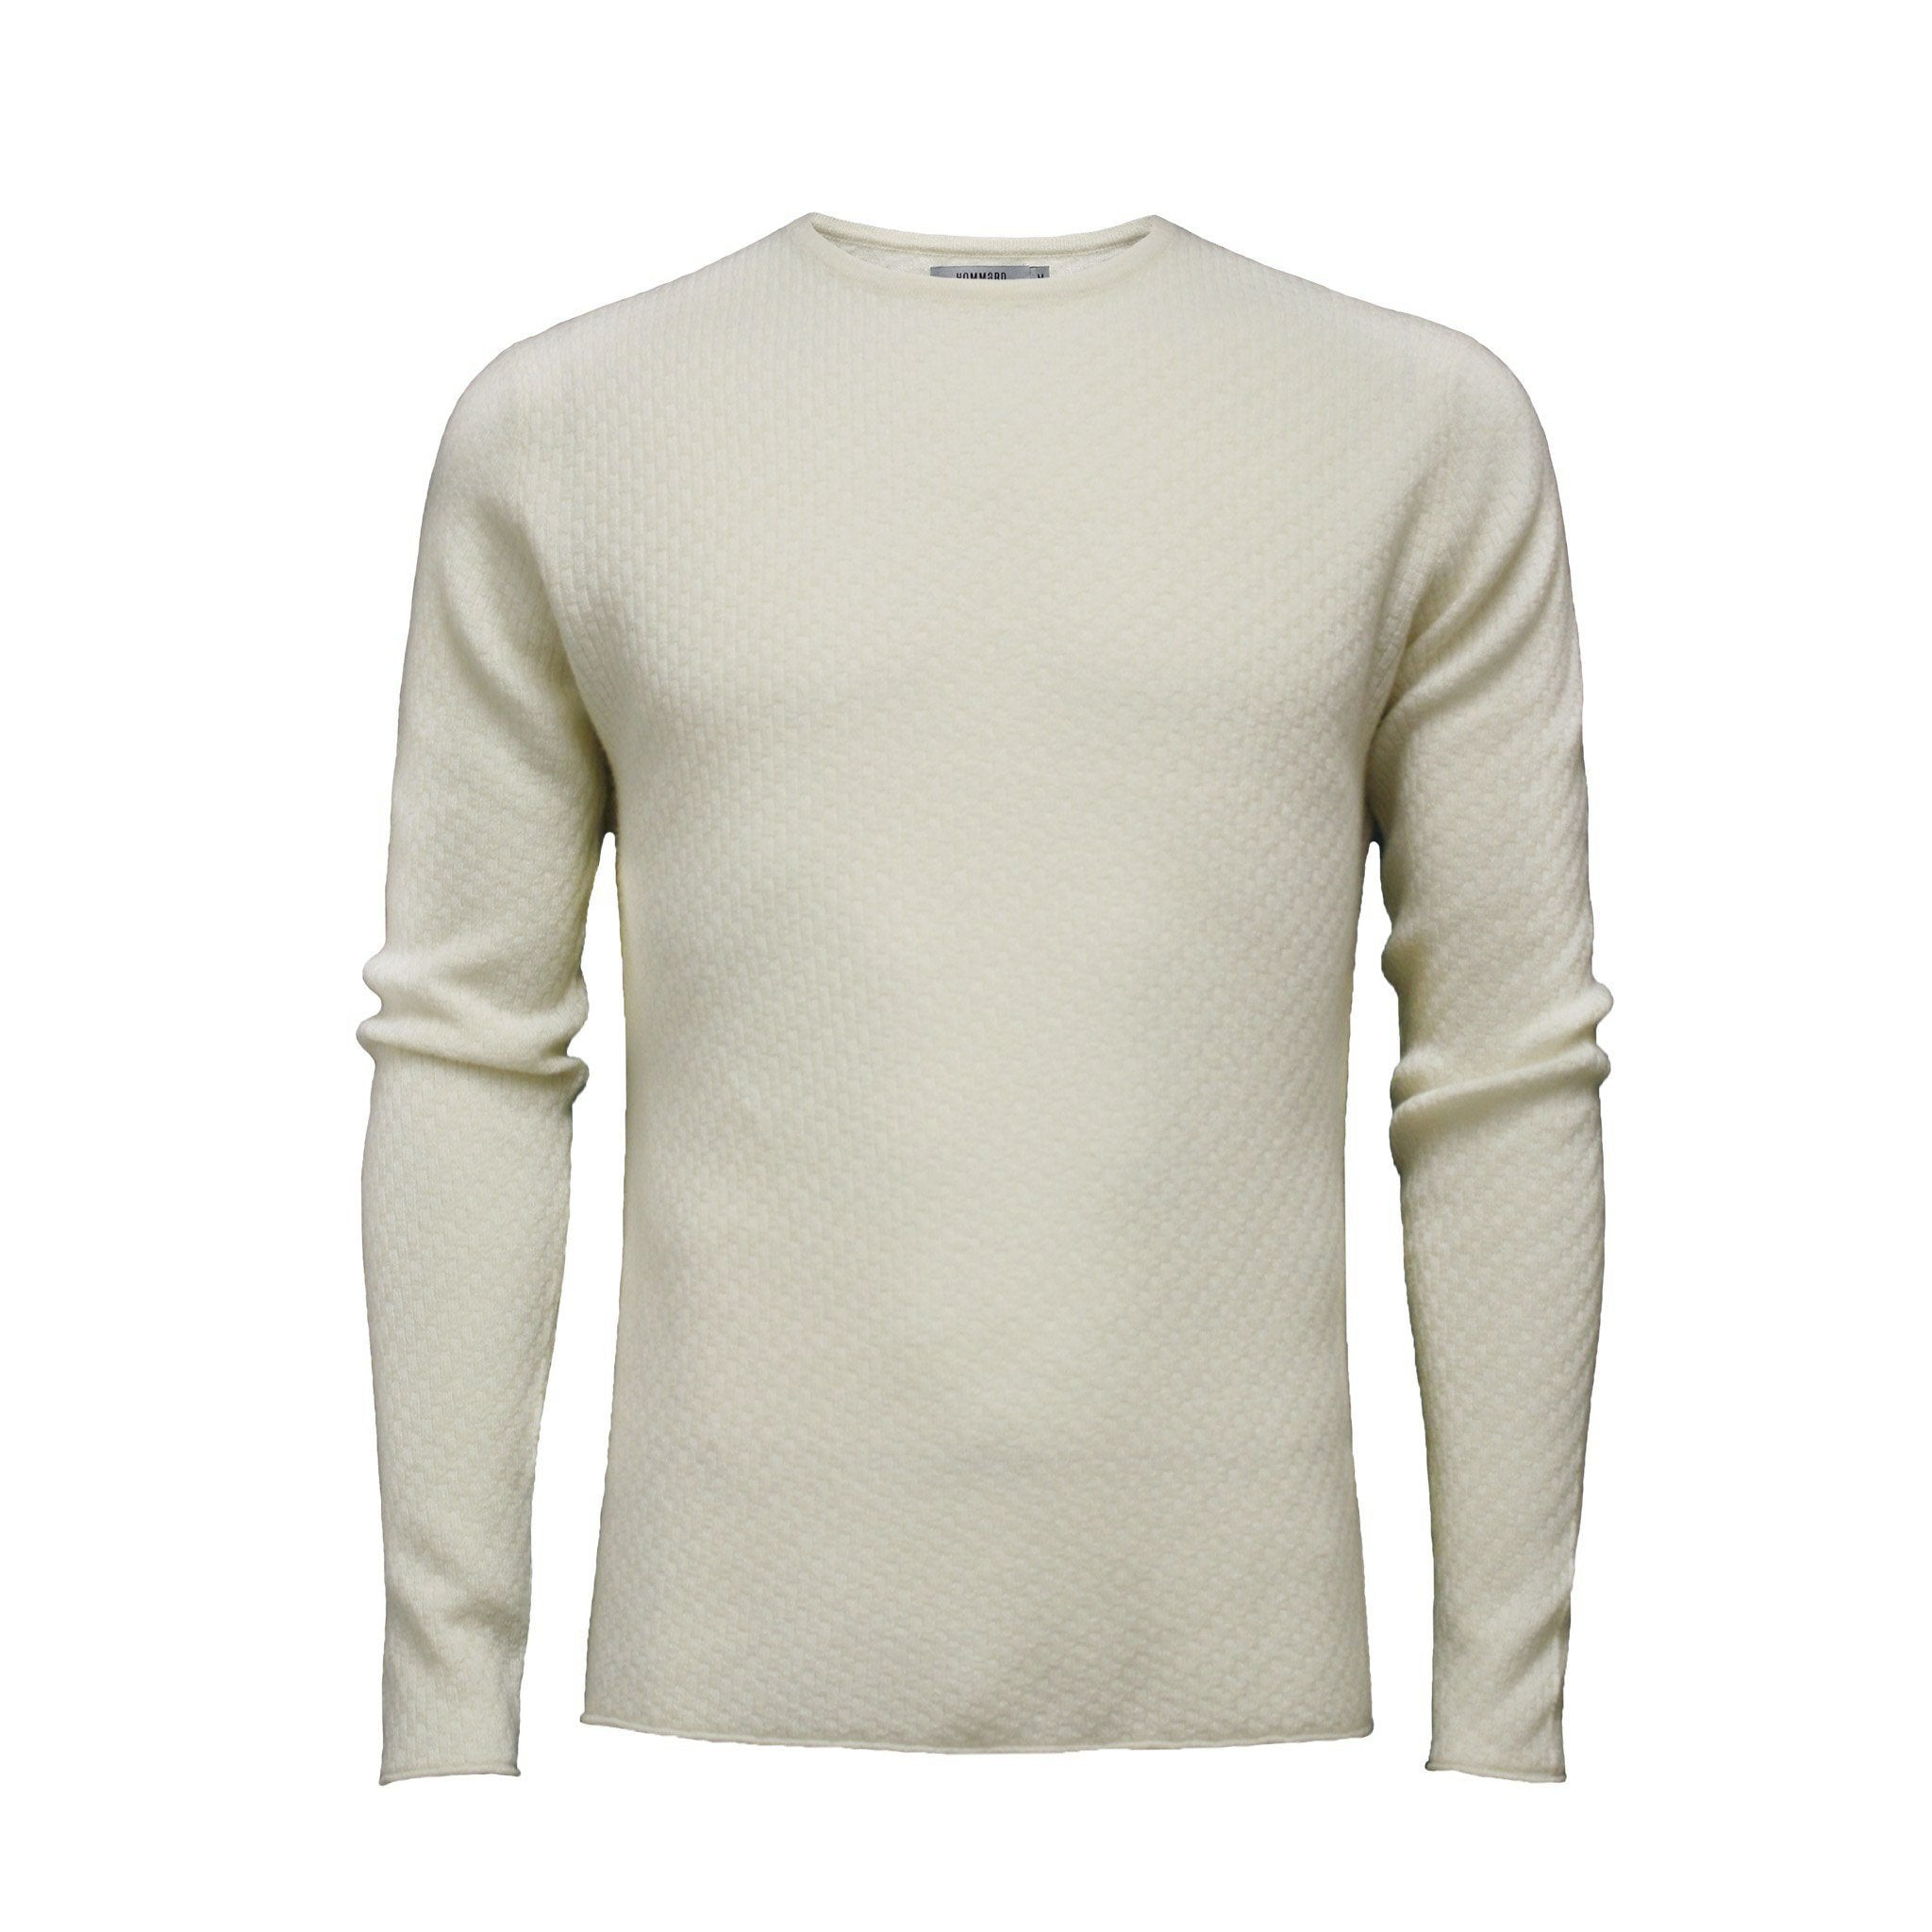 Men´s Cashmere Sweater Crew Neck Cabo in Carbon stitch - Hommard